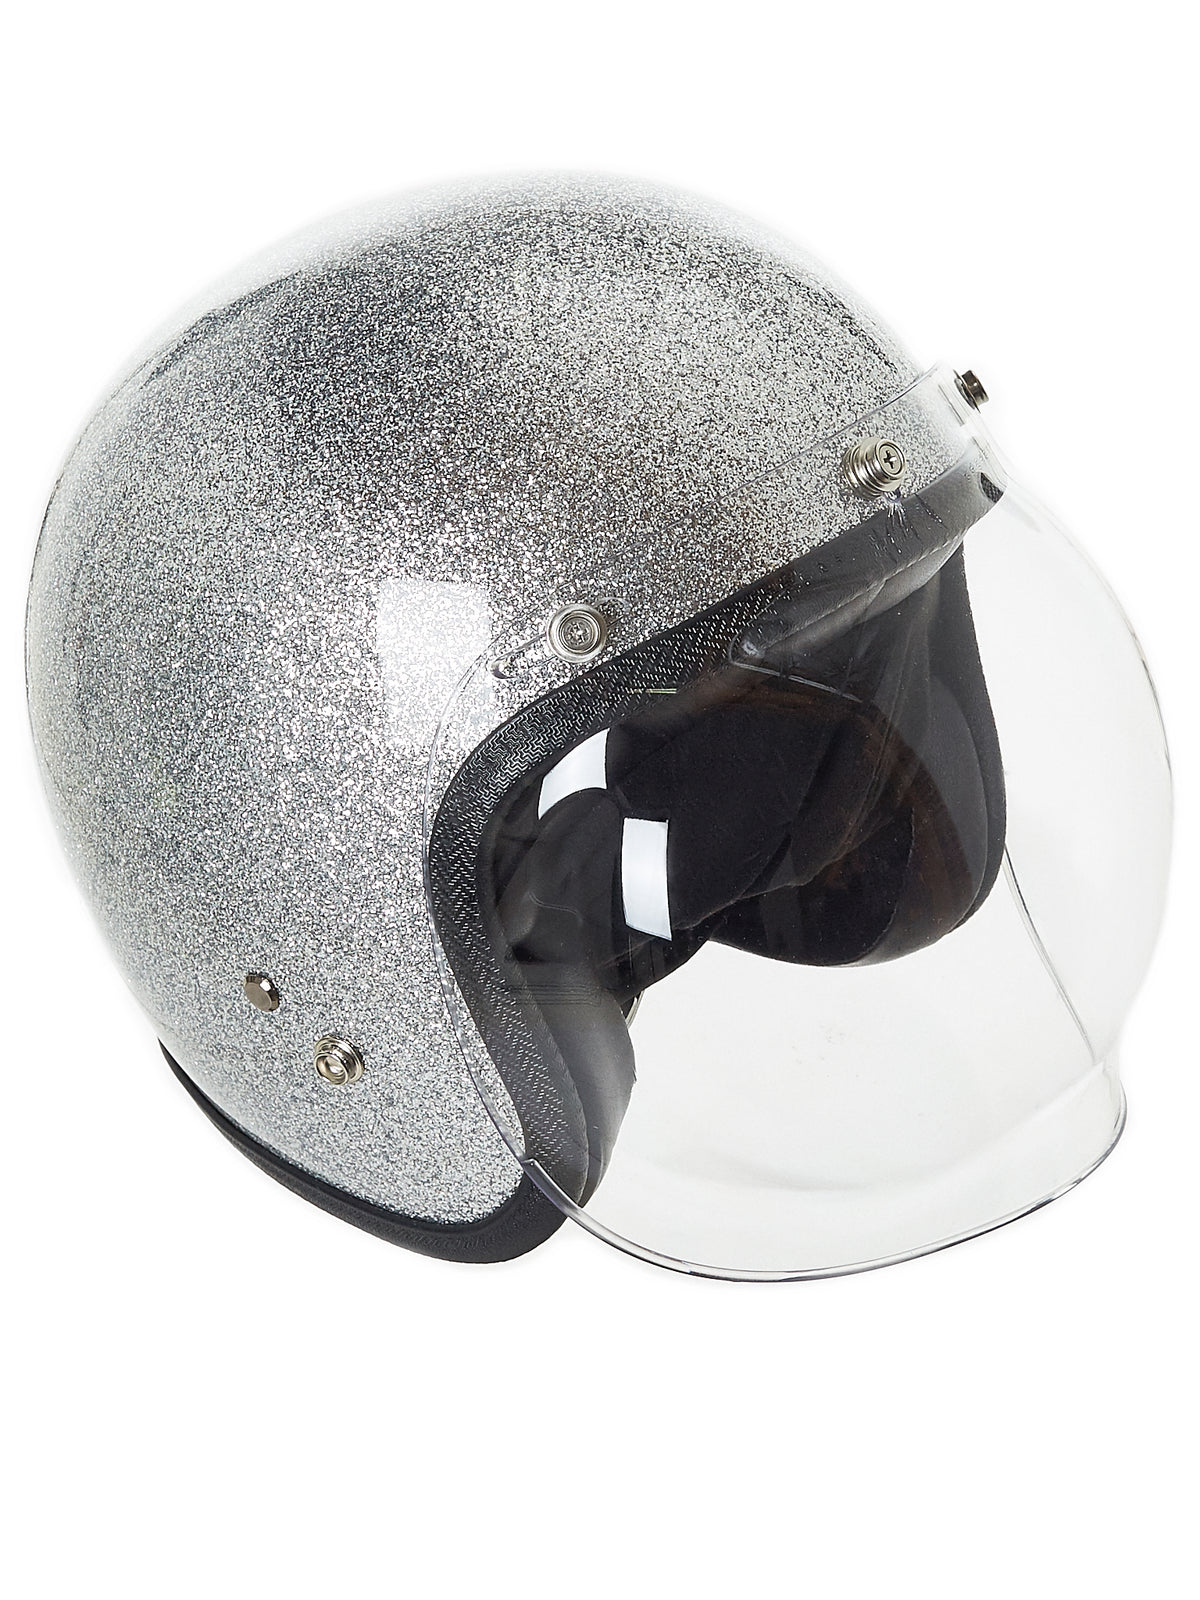 Metallic Helmet Bag (S63WG0000-T9002)